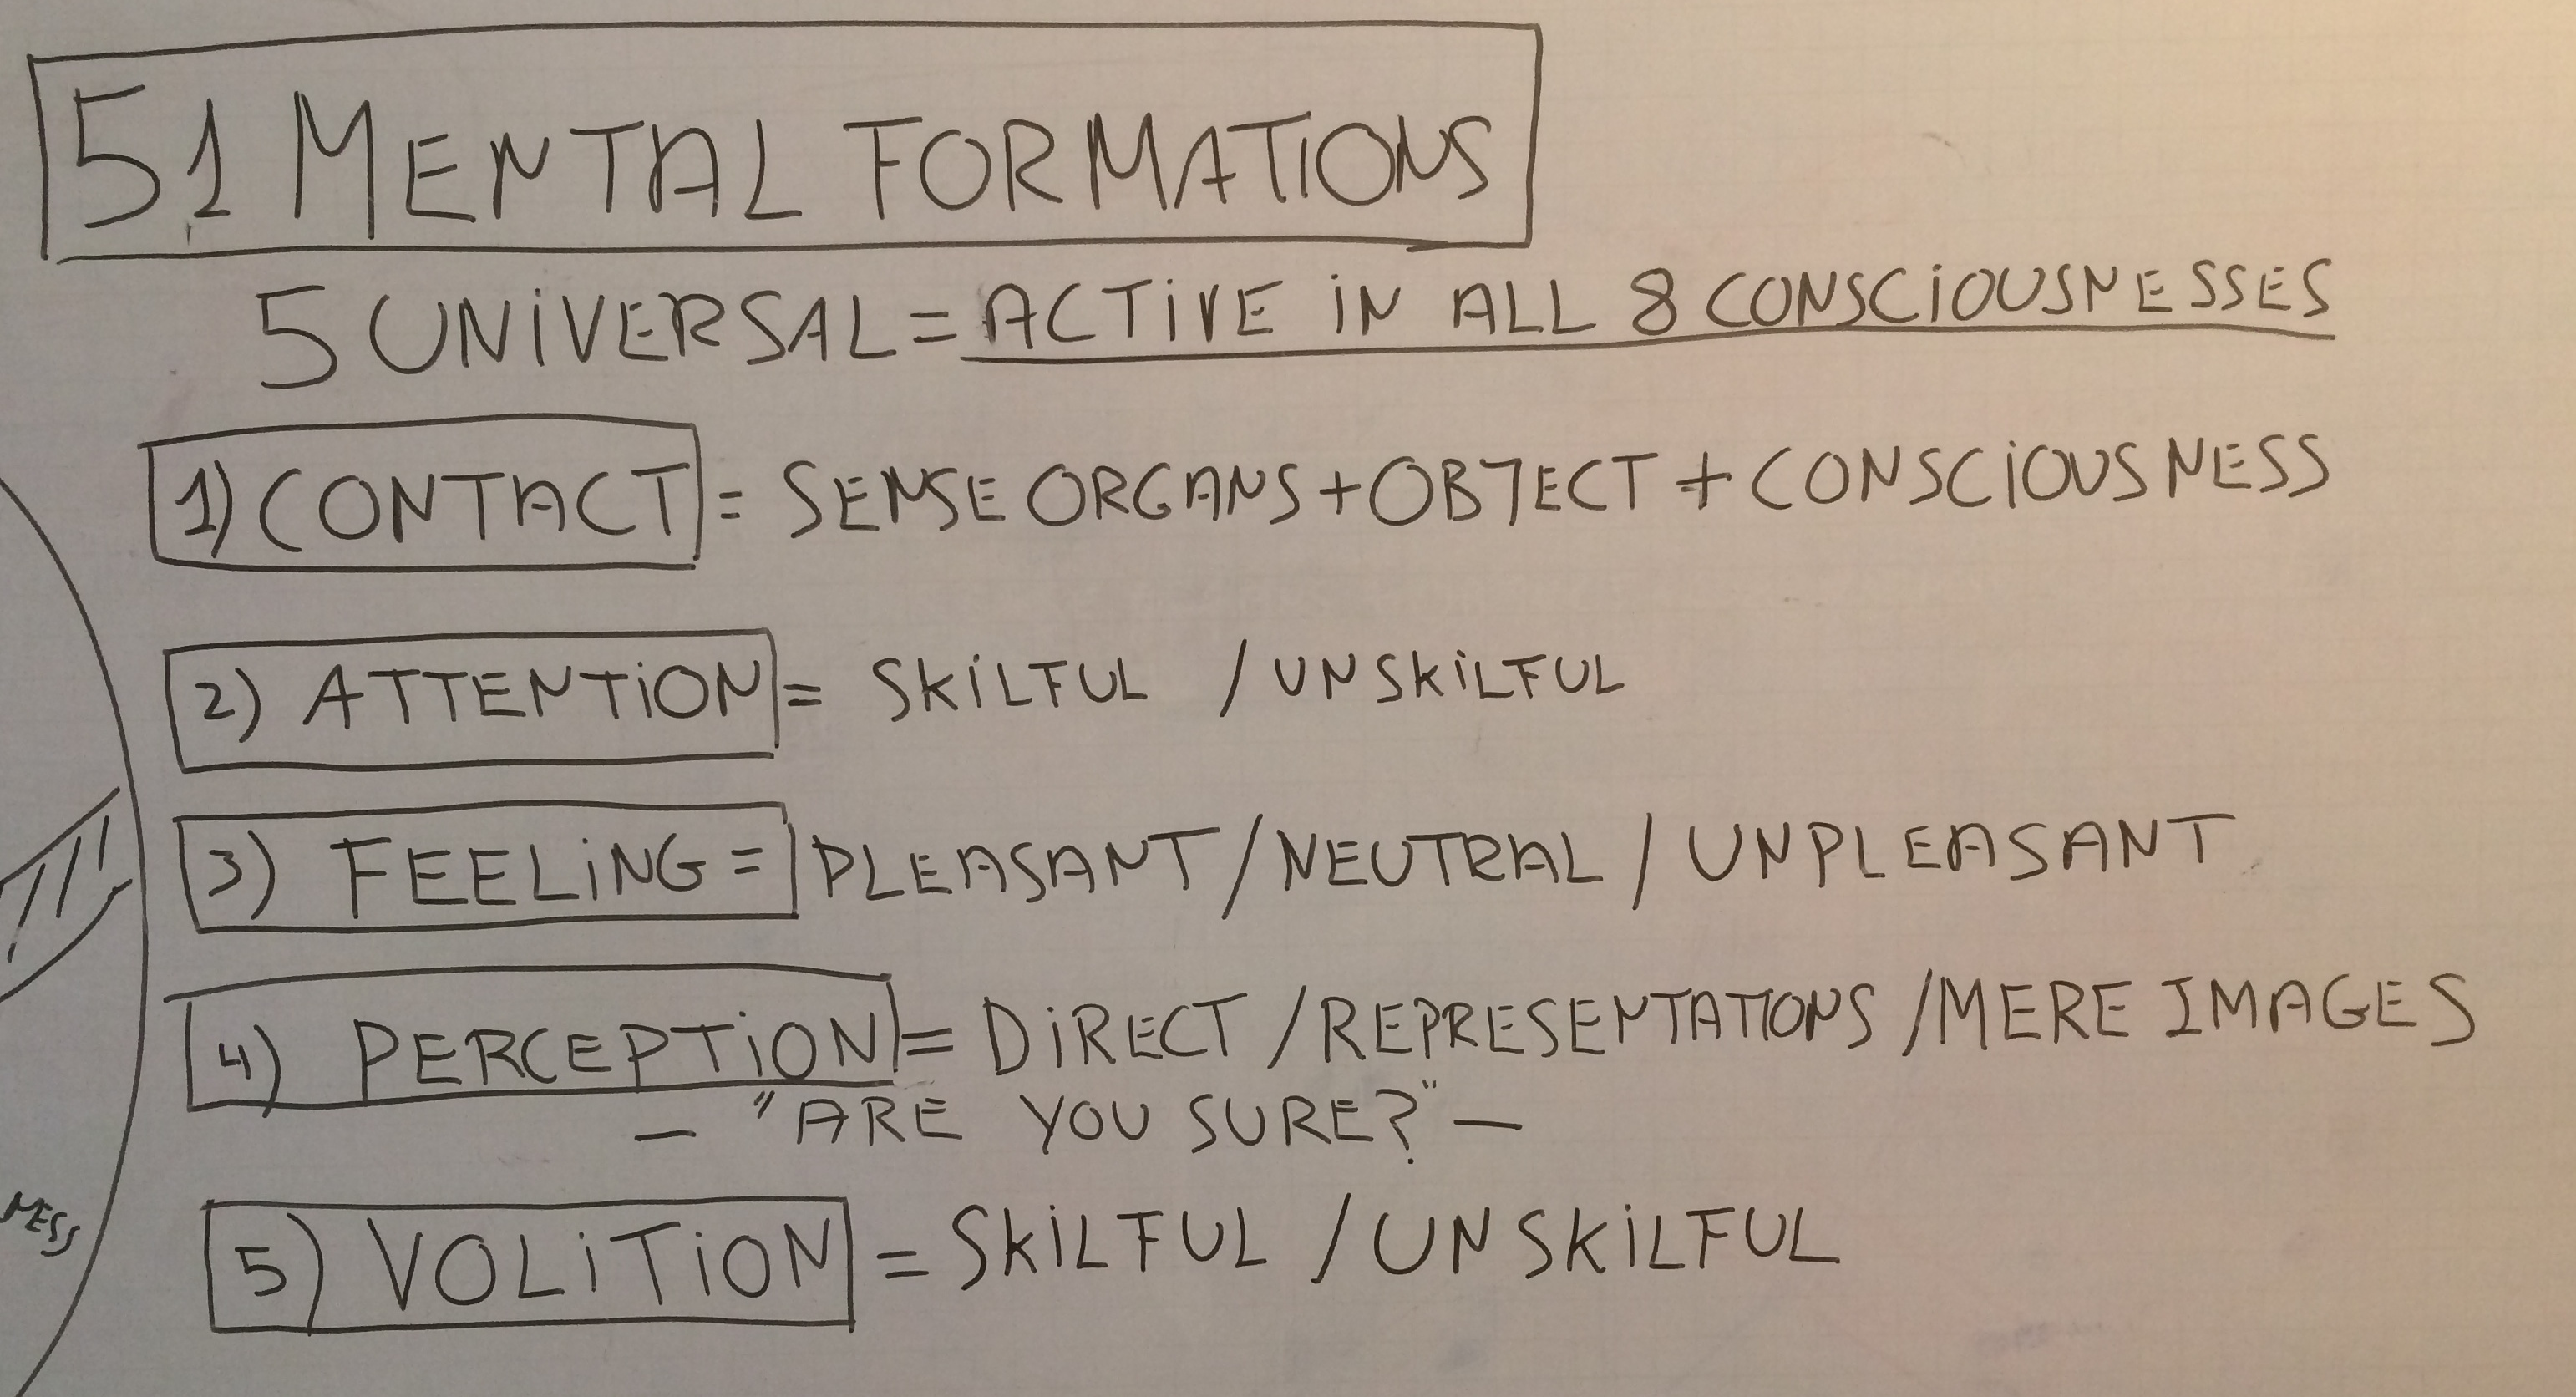 5 universal mental formations